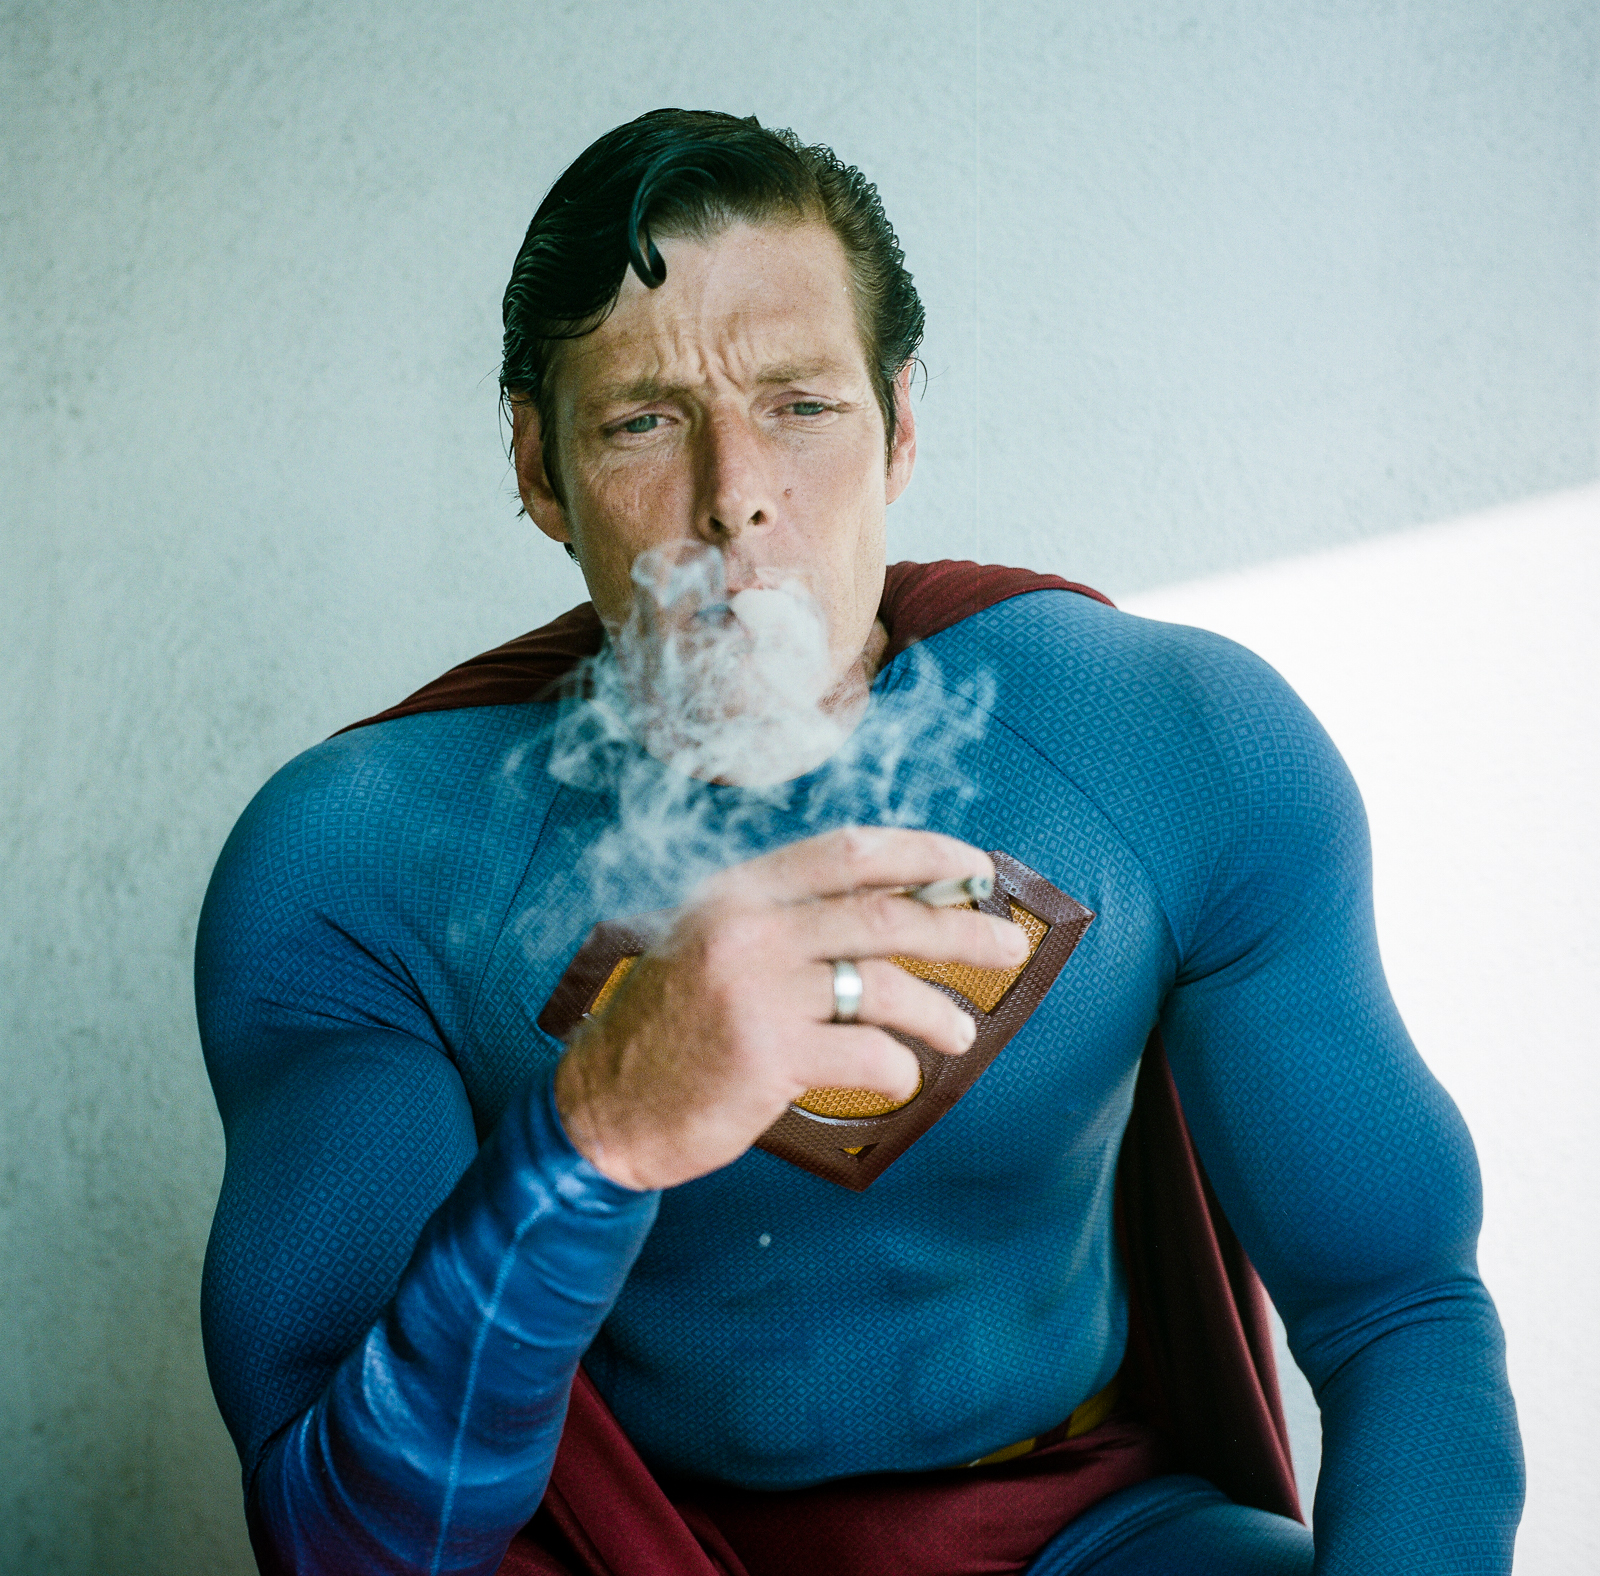 Christopher Dennis from Confessions of a Super Hero, as Superman. Photo by Flavio Scorsato